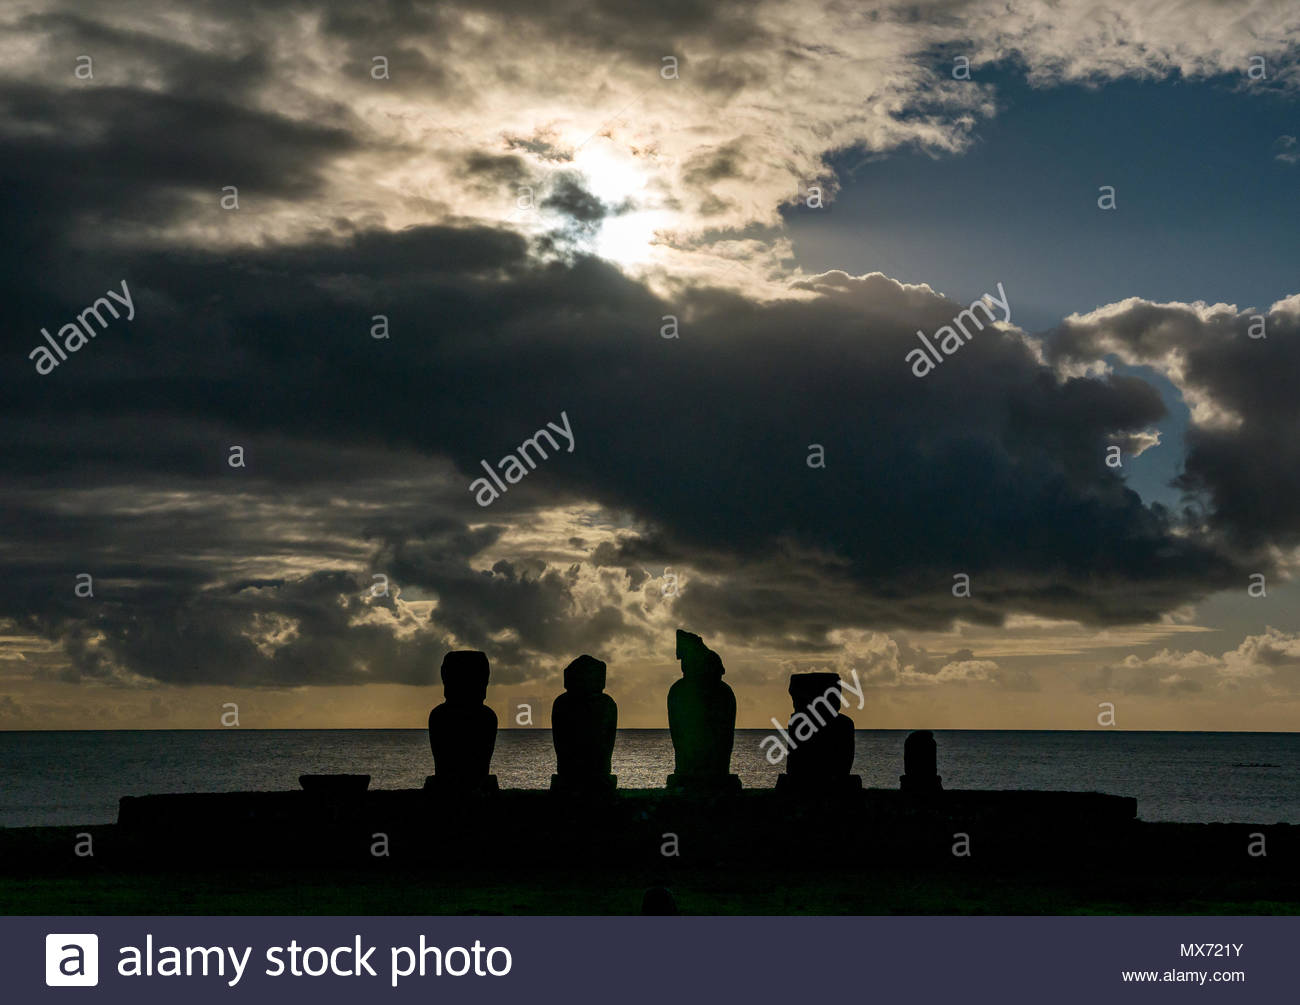 Dramatic sunset with Ahu Moai silhouettes, Tahai, Hanga Roa, Easter Island, Rapa Nui, Chile - Stock Image